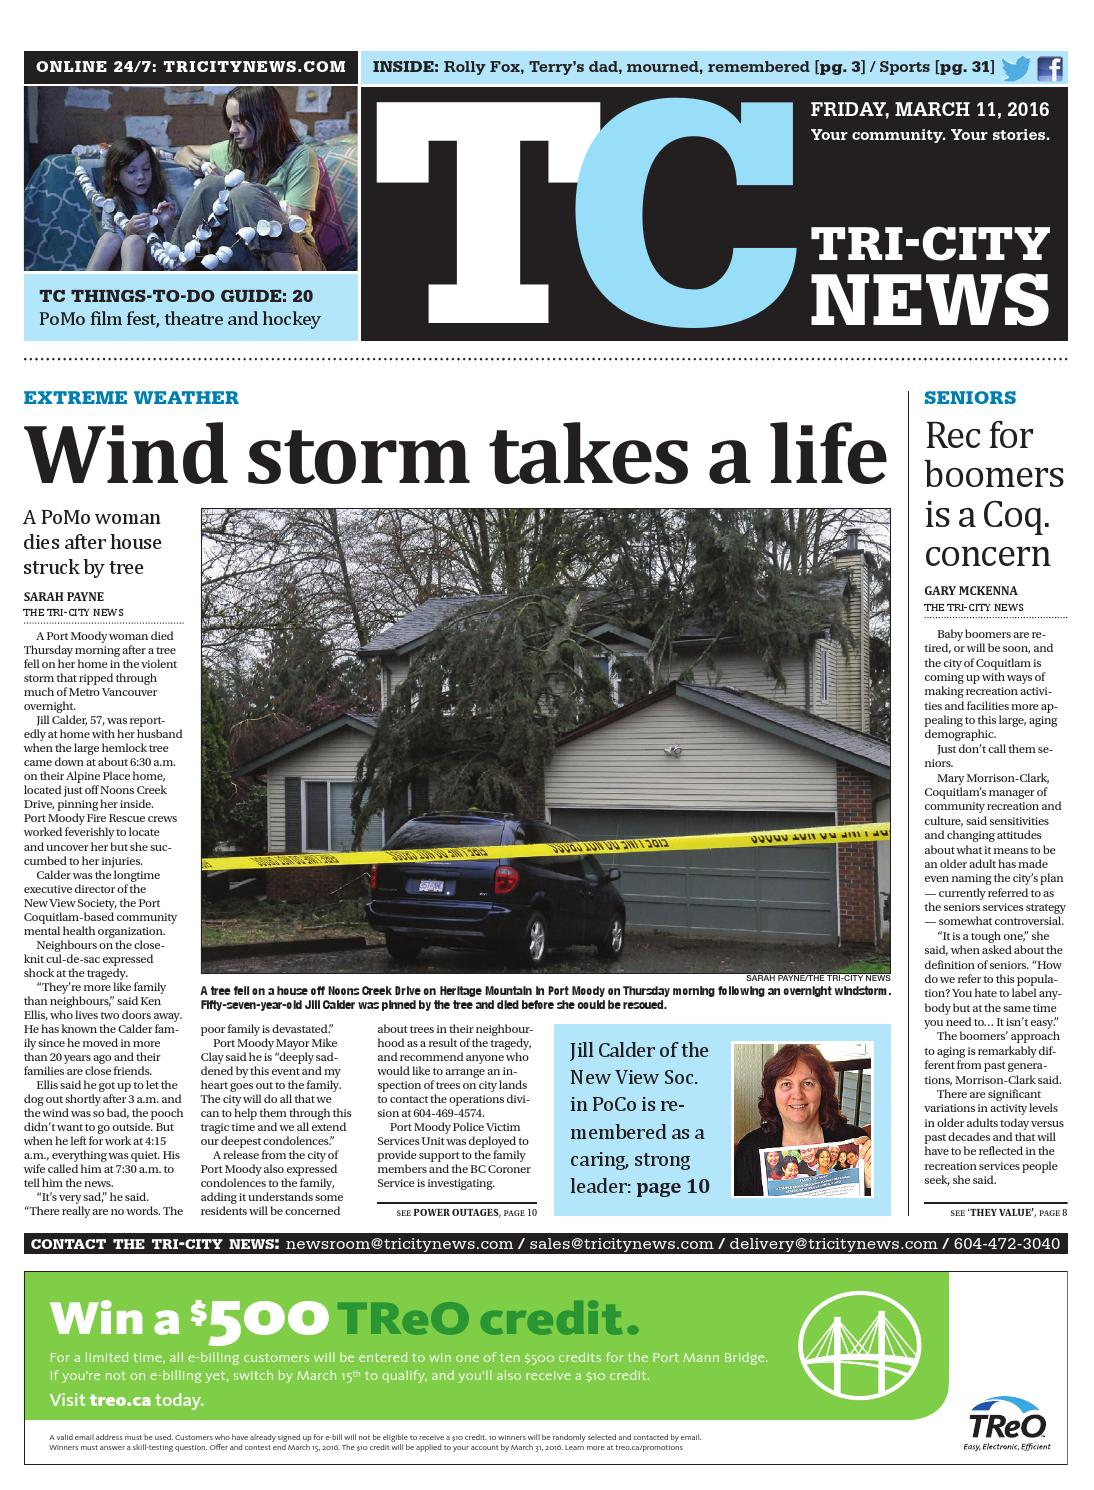 tri-city news march 11 2016 by tri-city news - issuu